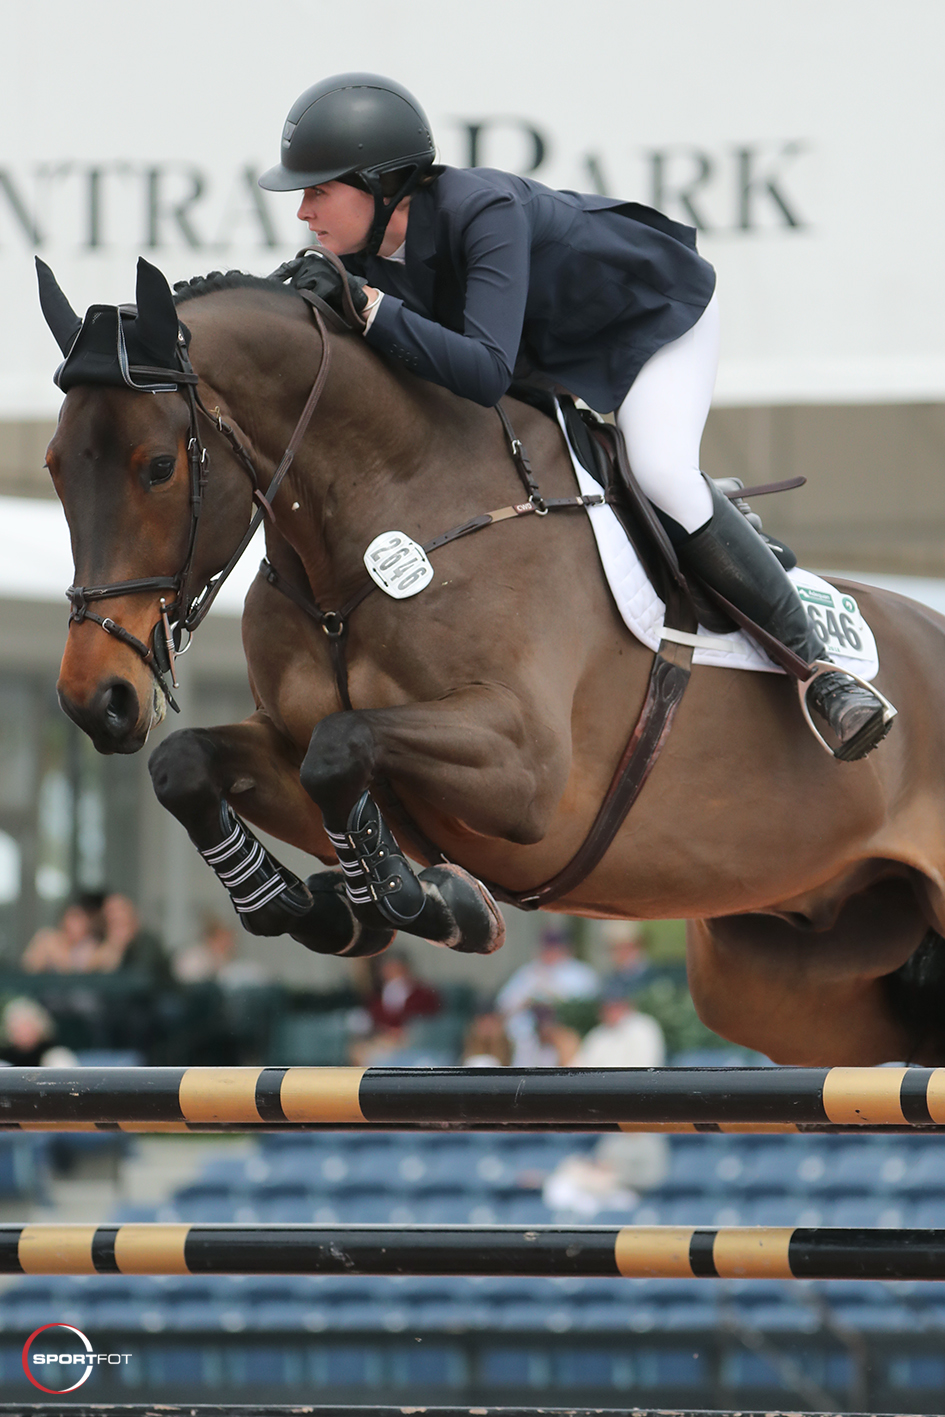 2018-01-21-99-99-wef-csi-u-25-welcome-gp-hunter-holloway-easter-jam-sportfot